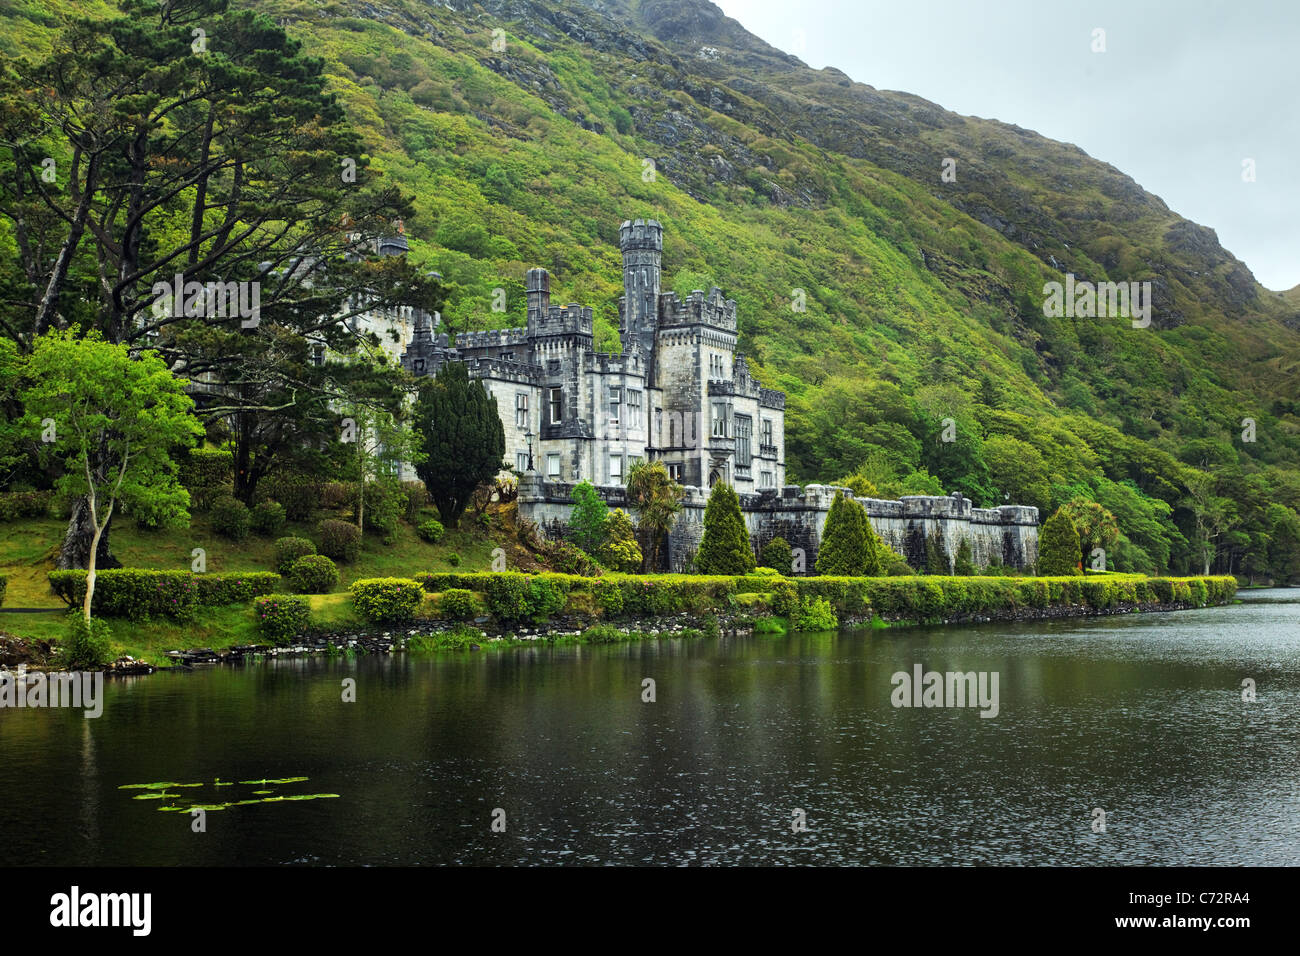 Kylemore Abbey, Connemara, County Galway, Republic of Ireland Stock Photo